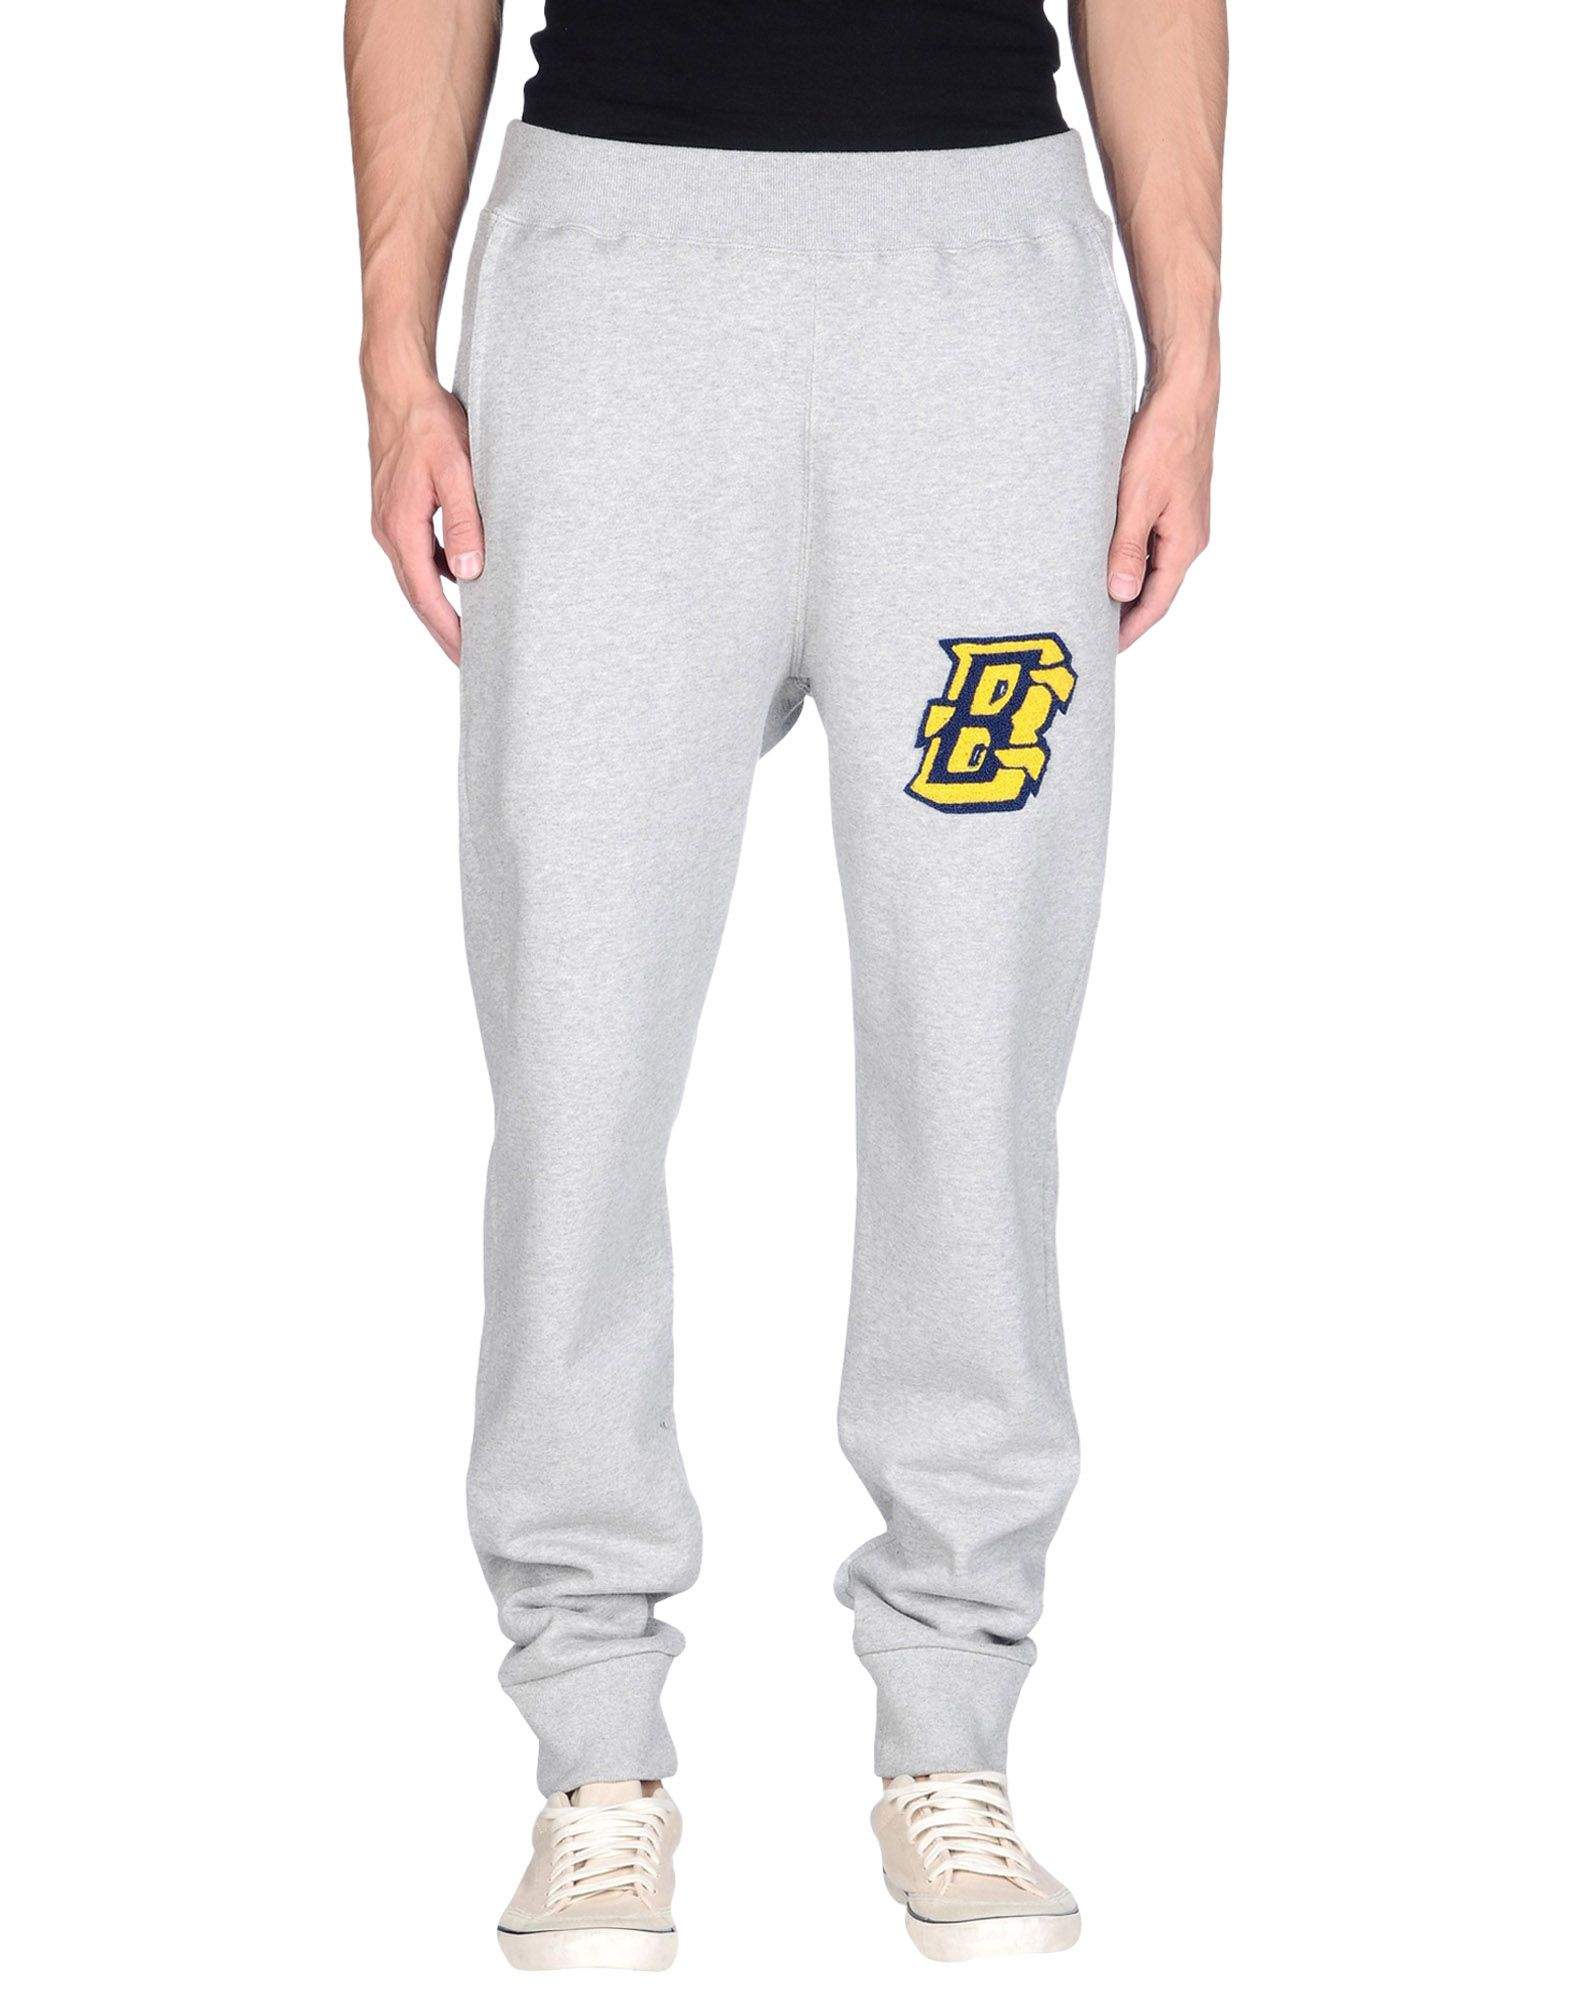 BBCICECREAM Casual Trouser in Light Grey (Grey) for Men